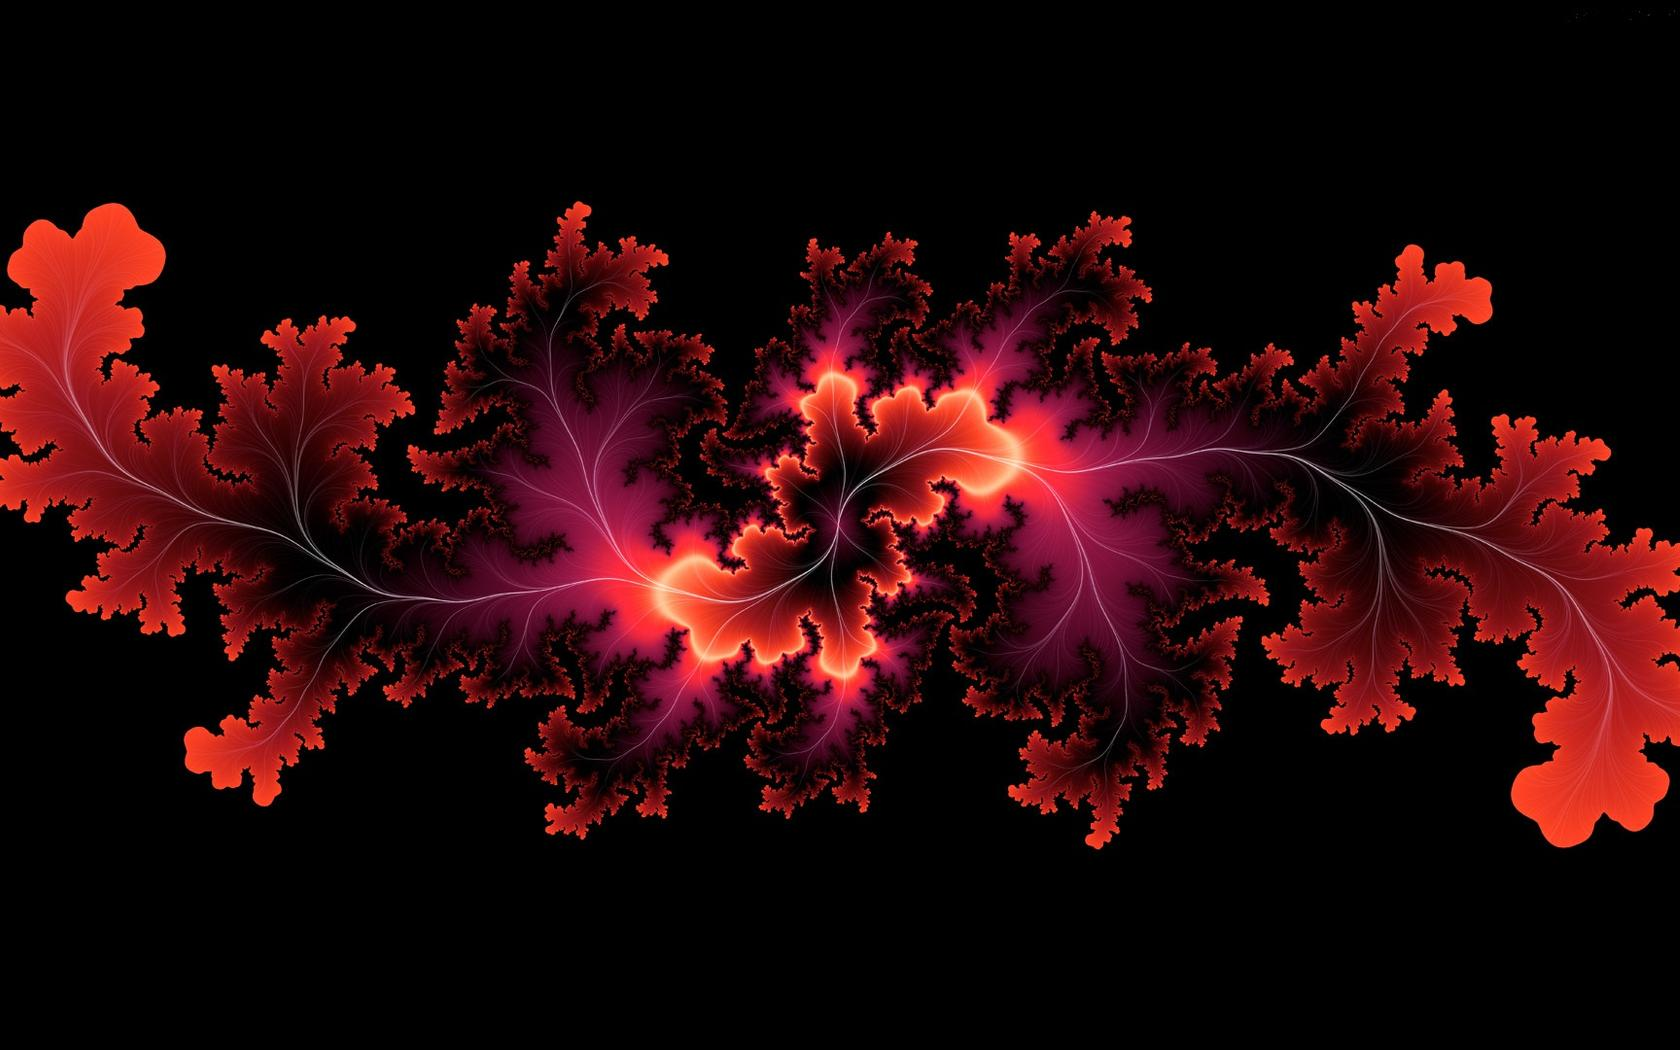 Abstract Red Leaves HD Wallpaper Wallpaper Download 1680x1050